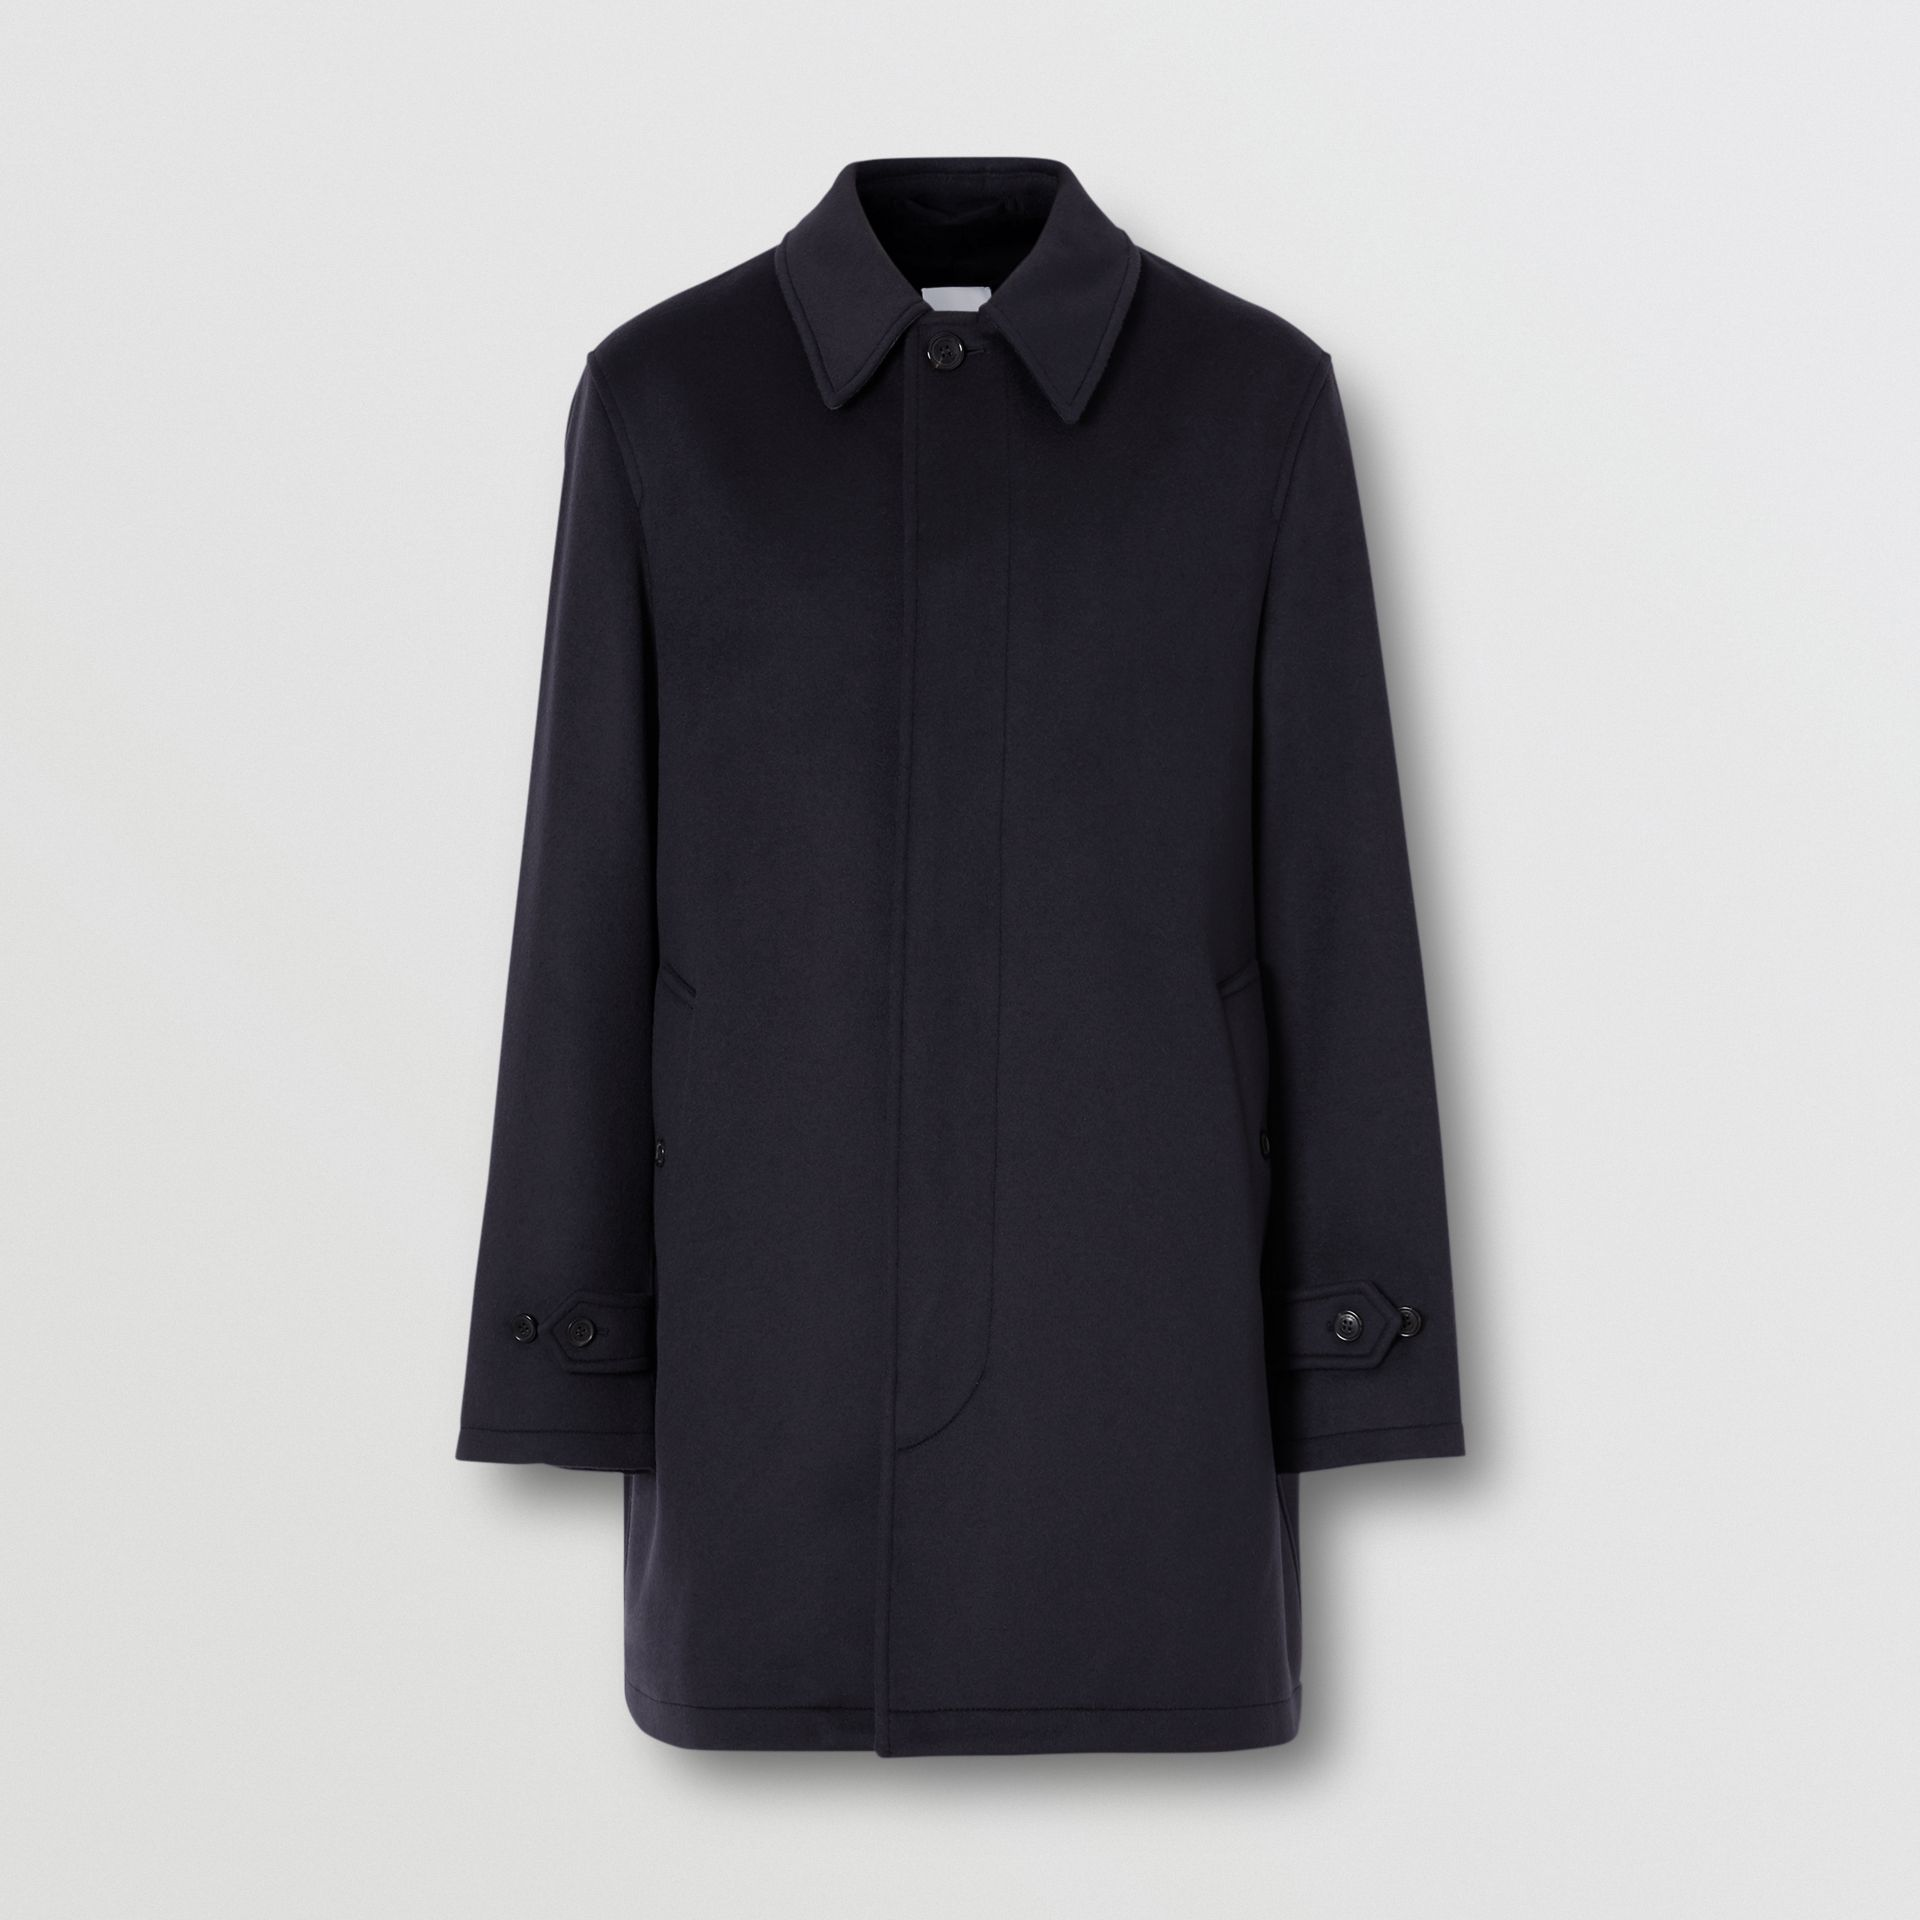 Wool Cashmere Car Coat in Navy - Men | Burberry Australia - gallery image 3